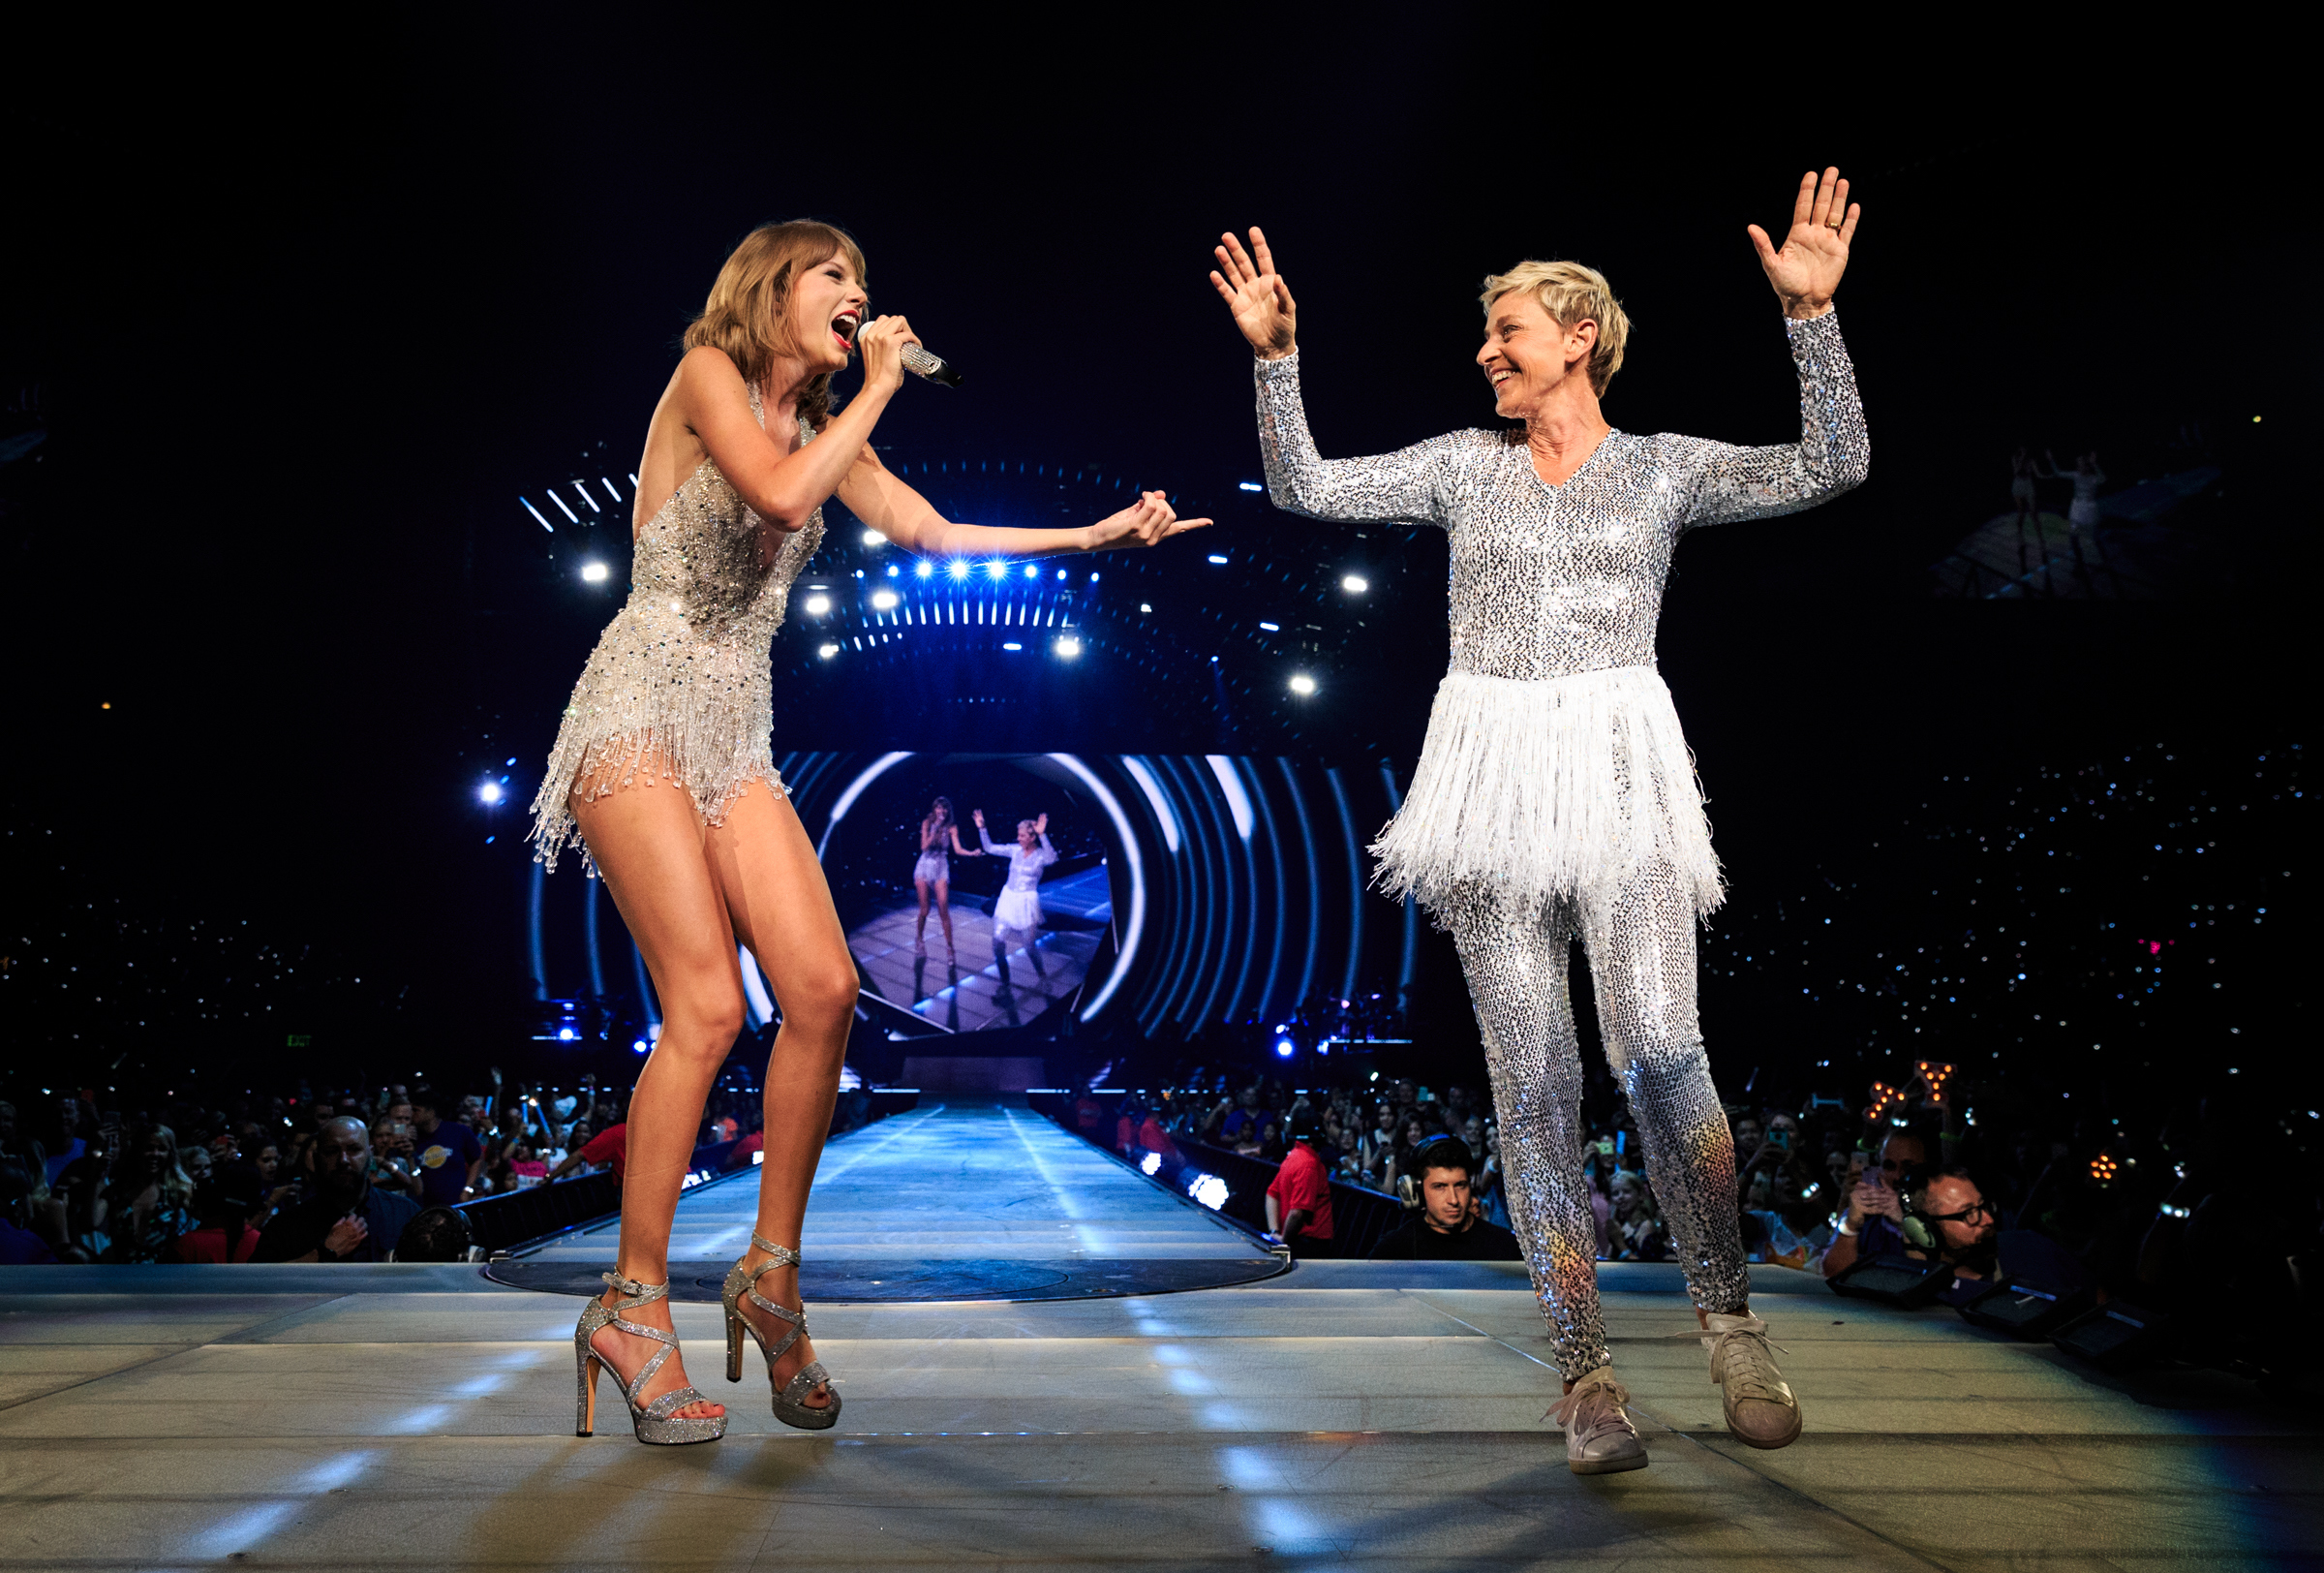 Singer-songwriter Taylor Swift and comedian Ellen DeGeneres perform onstage during Taylor Swift The 1989 World Tour Live In Los Angeles at Staples Center on August 24, 2015.